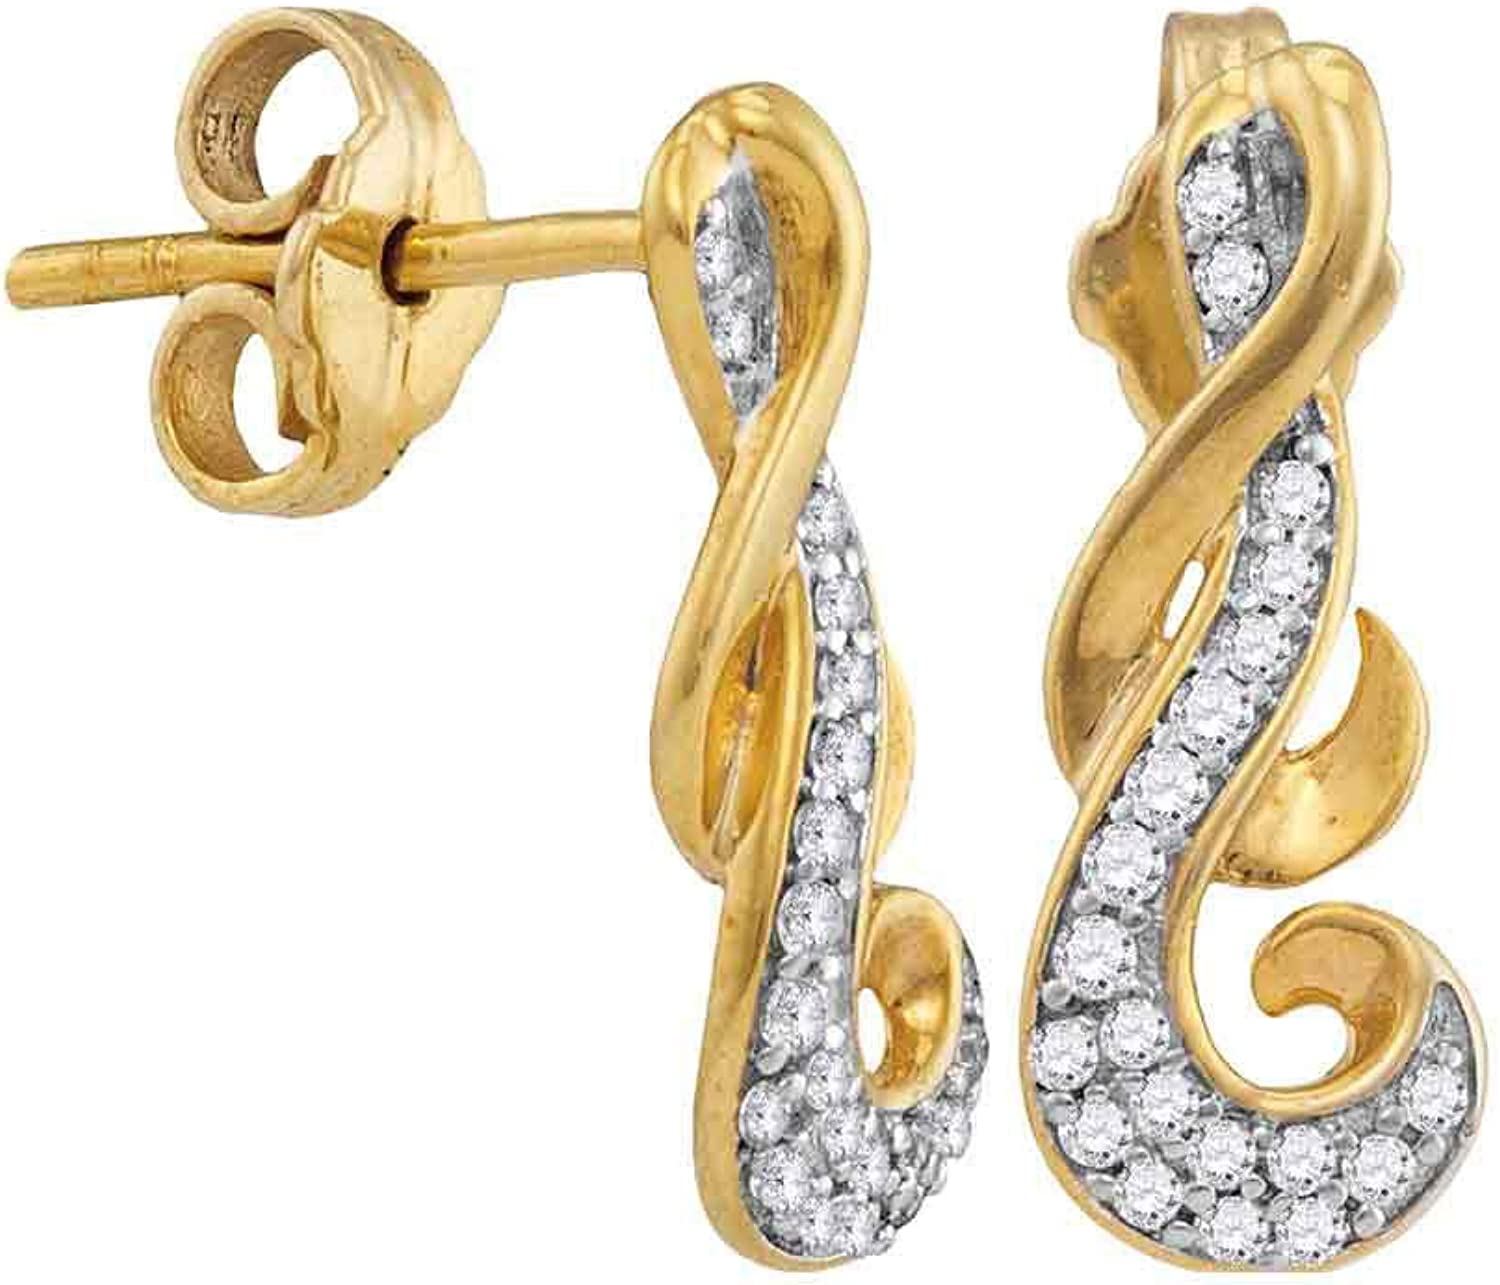 10kt Yellow gold Womens Round Diamond Cluster Curled Screwback Earrings 1 6 Cttw